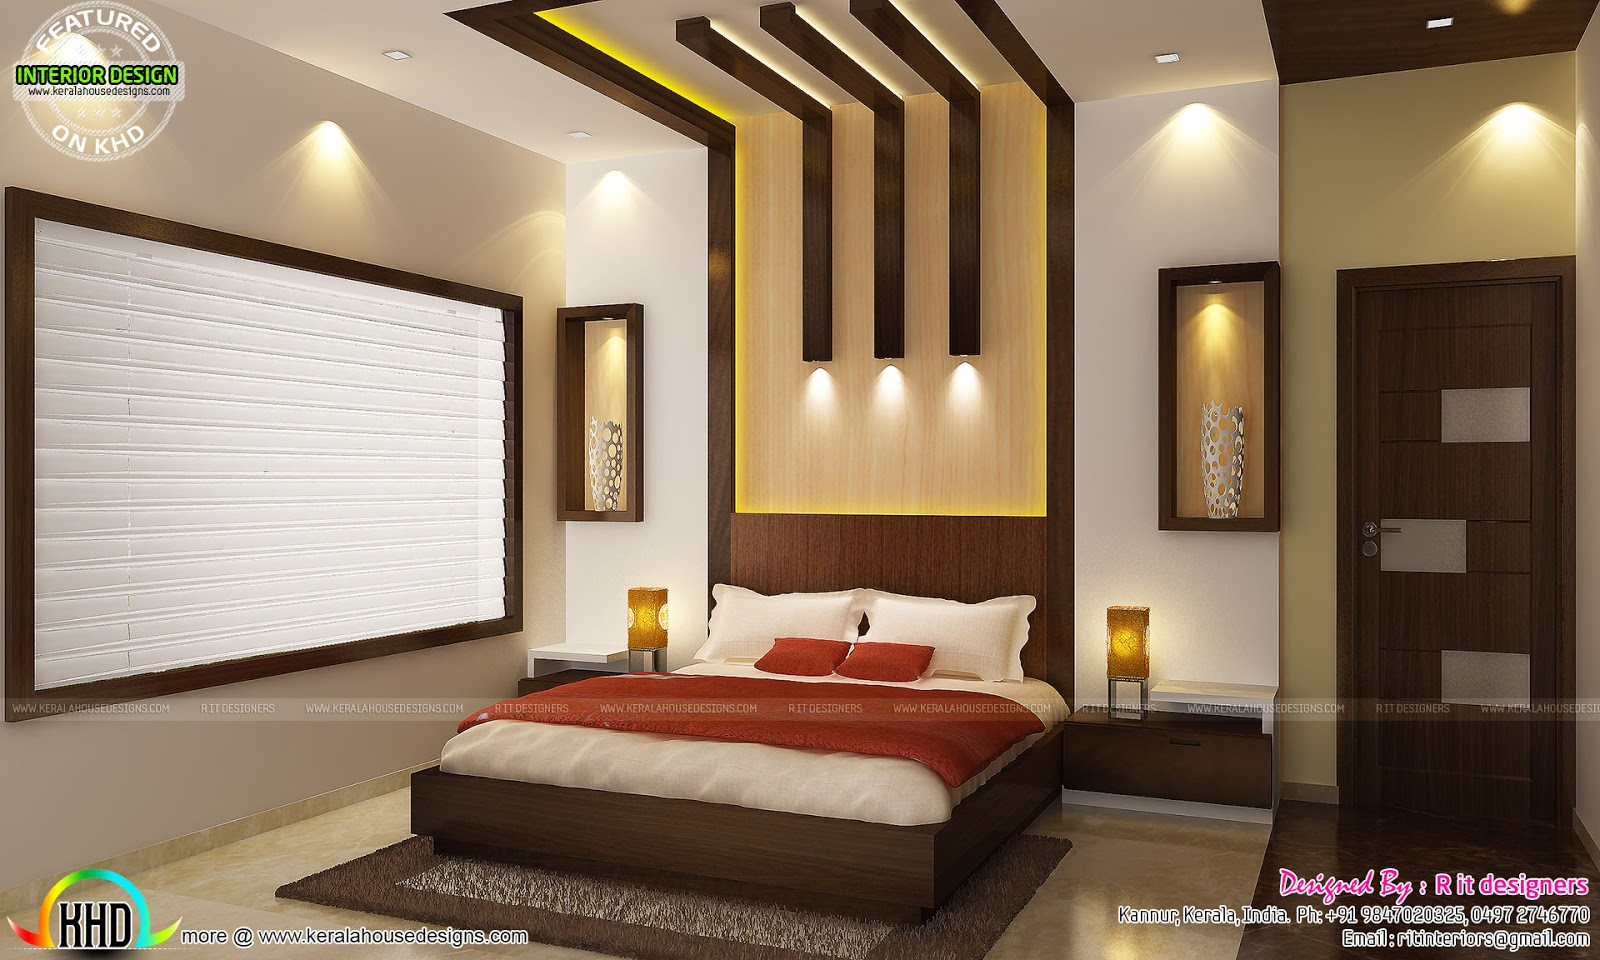 Kitchen living bedroom dining interior decor kerala home design and floor plans - Interior bedroom design ...